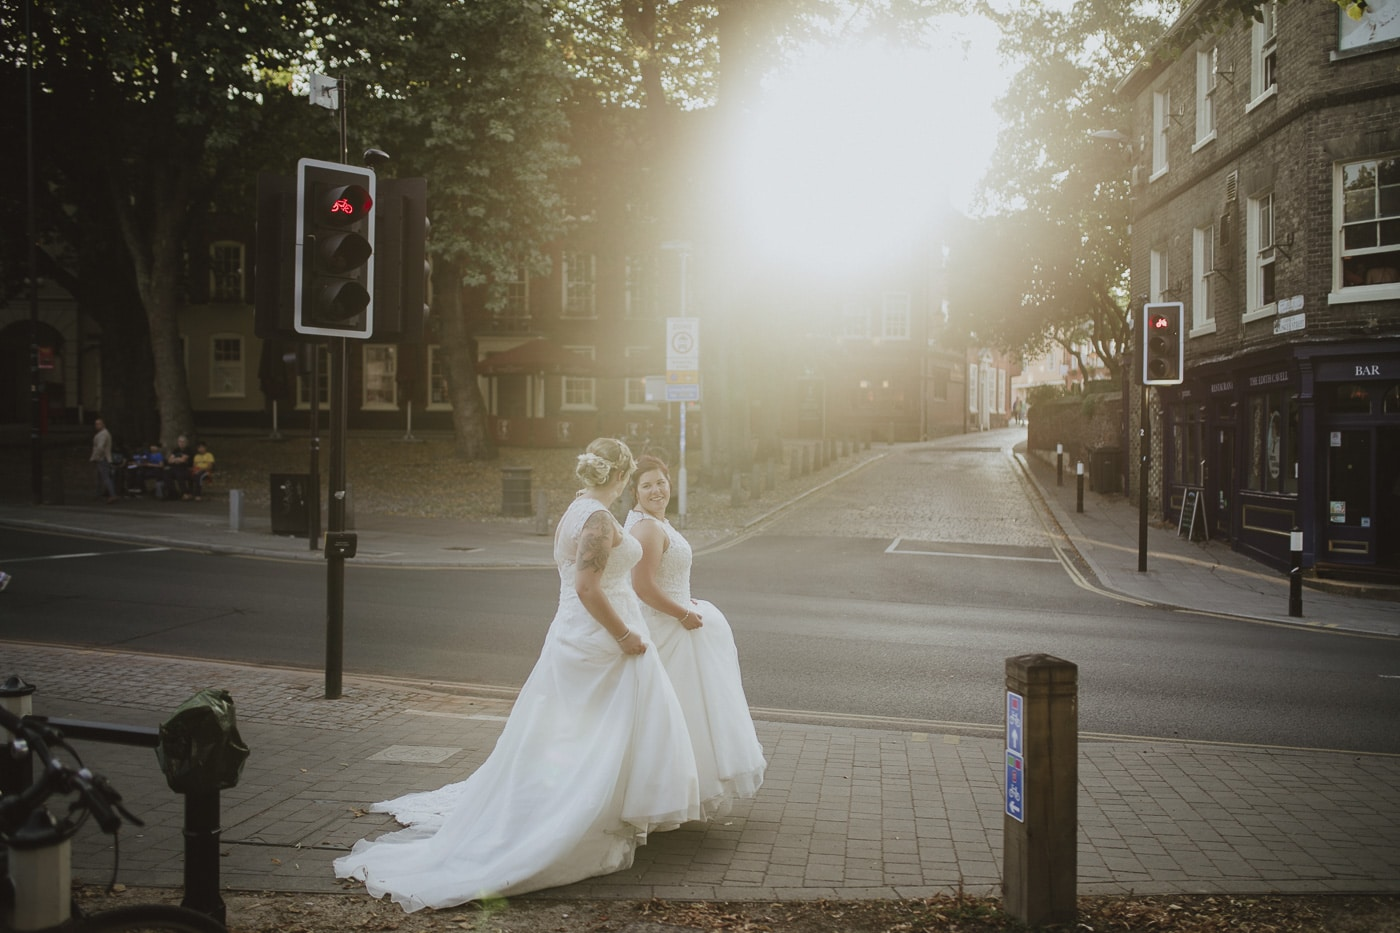 Brides walking down the street for wedding photography by Joshua Wyborn